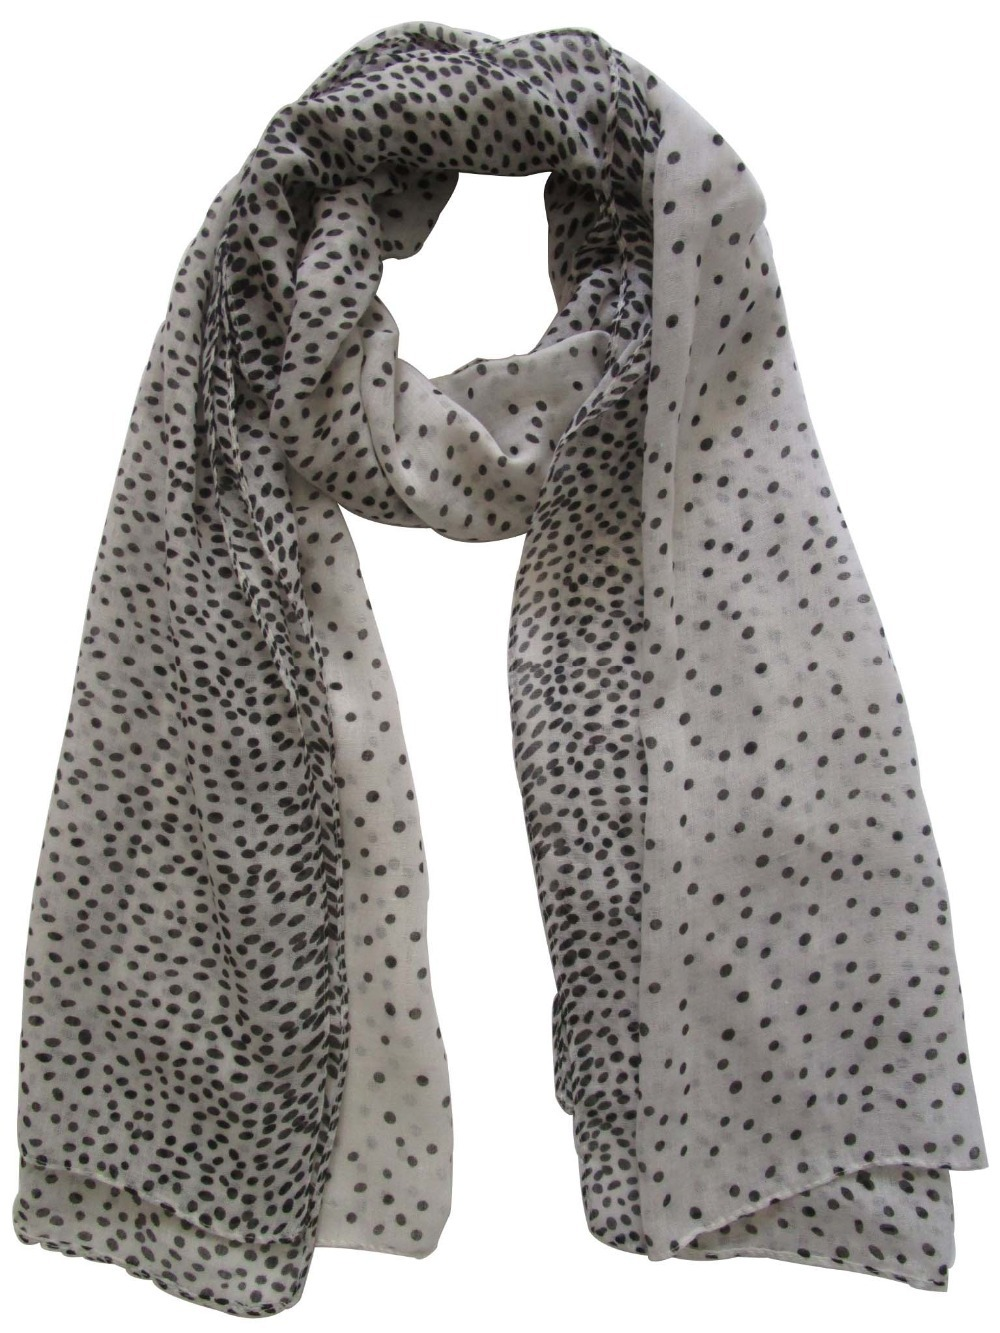 Free Shipping 2015 New Fashion Small Black White Polka Dot Scarf Wrap For Women Mother(China (Mainland))